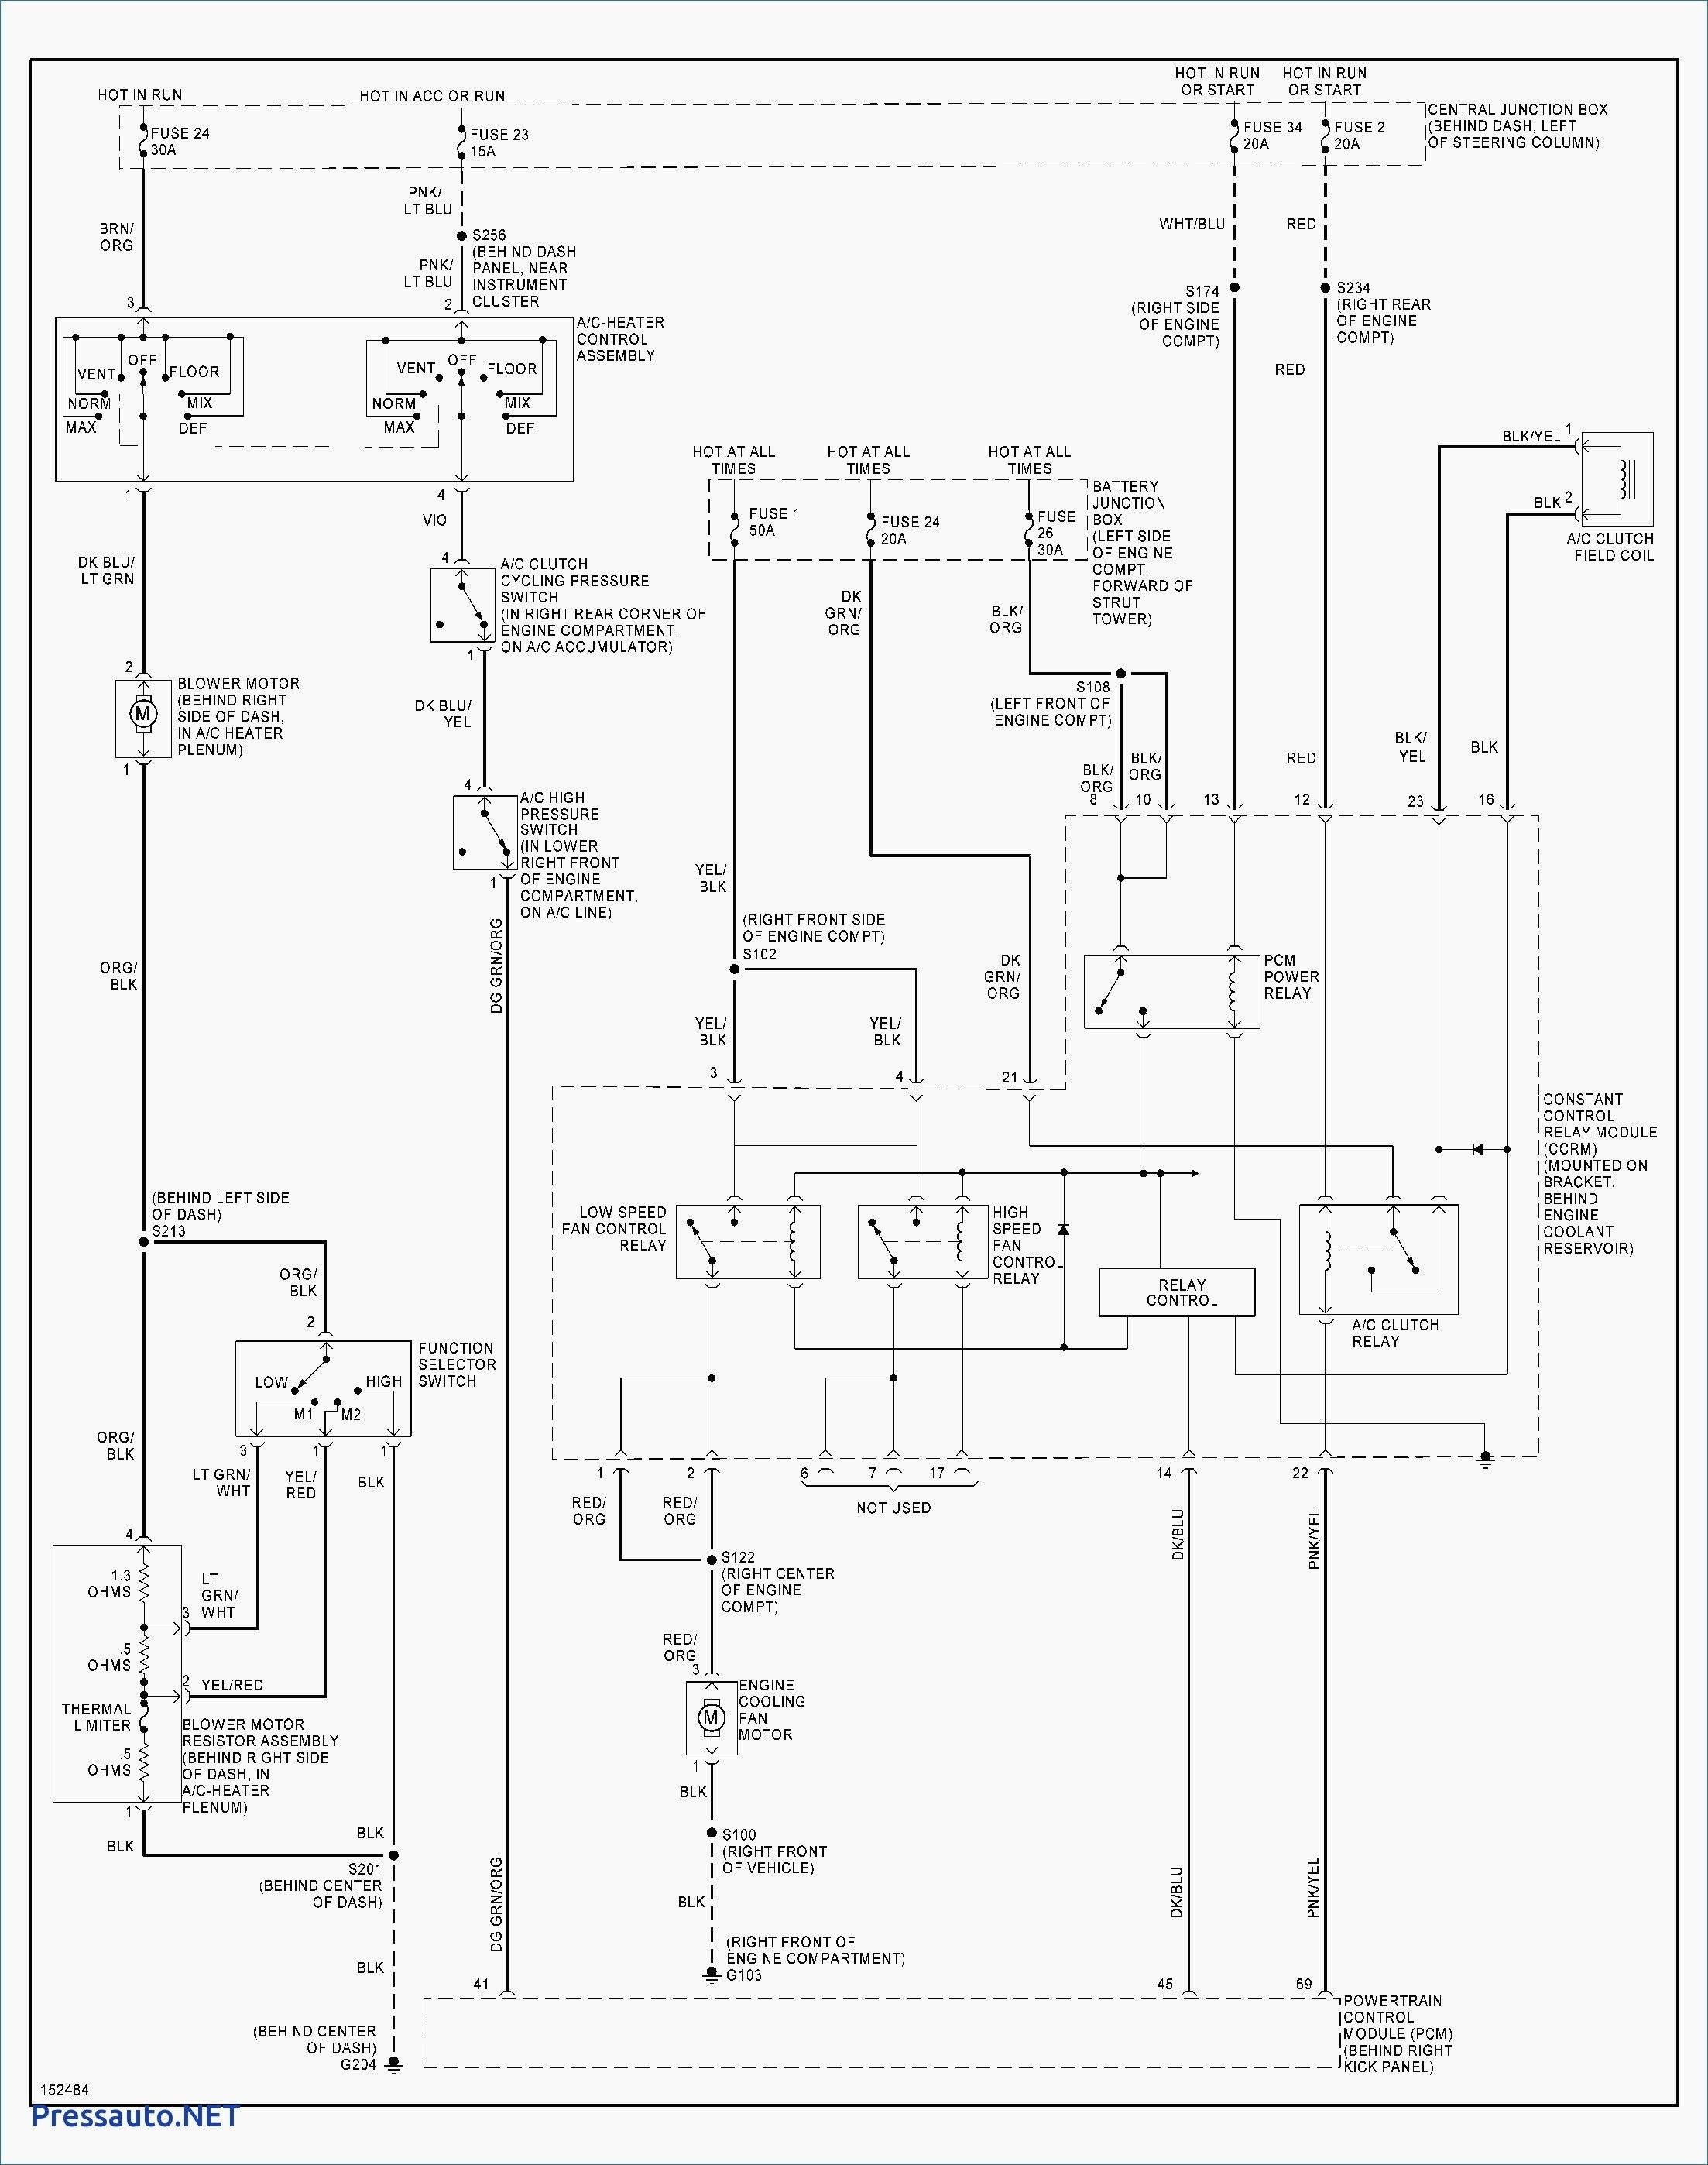 Jeep Grand Cherokee Infinity Stereo Wiring Diagram